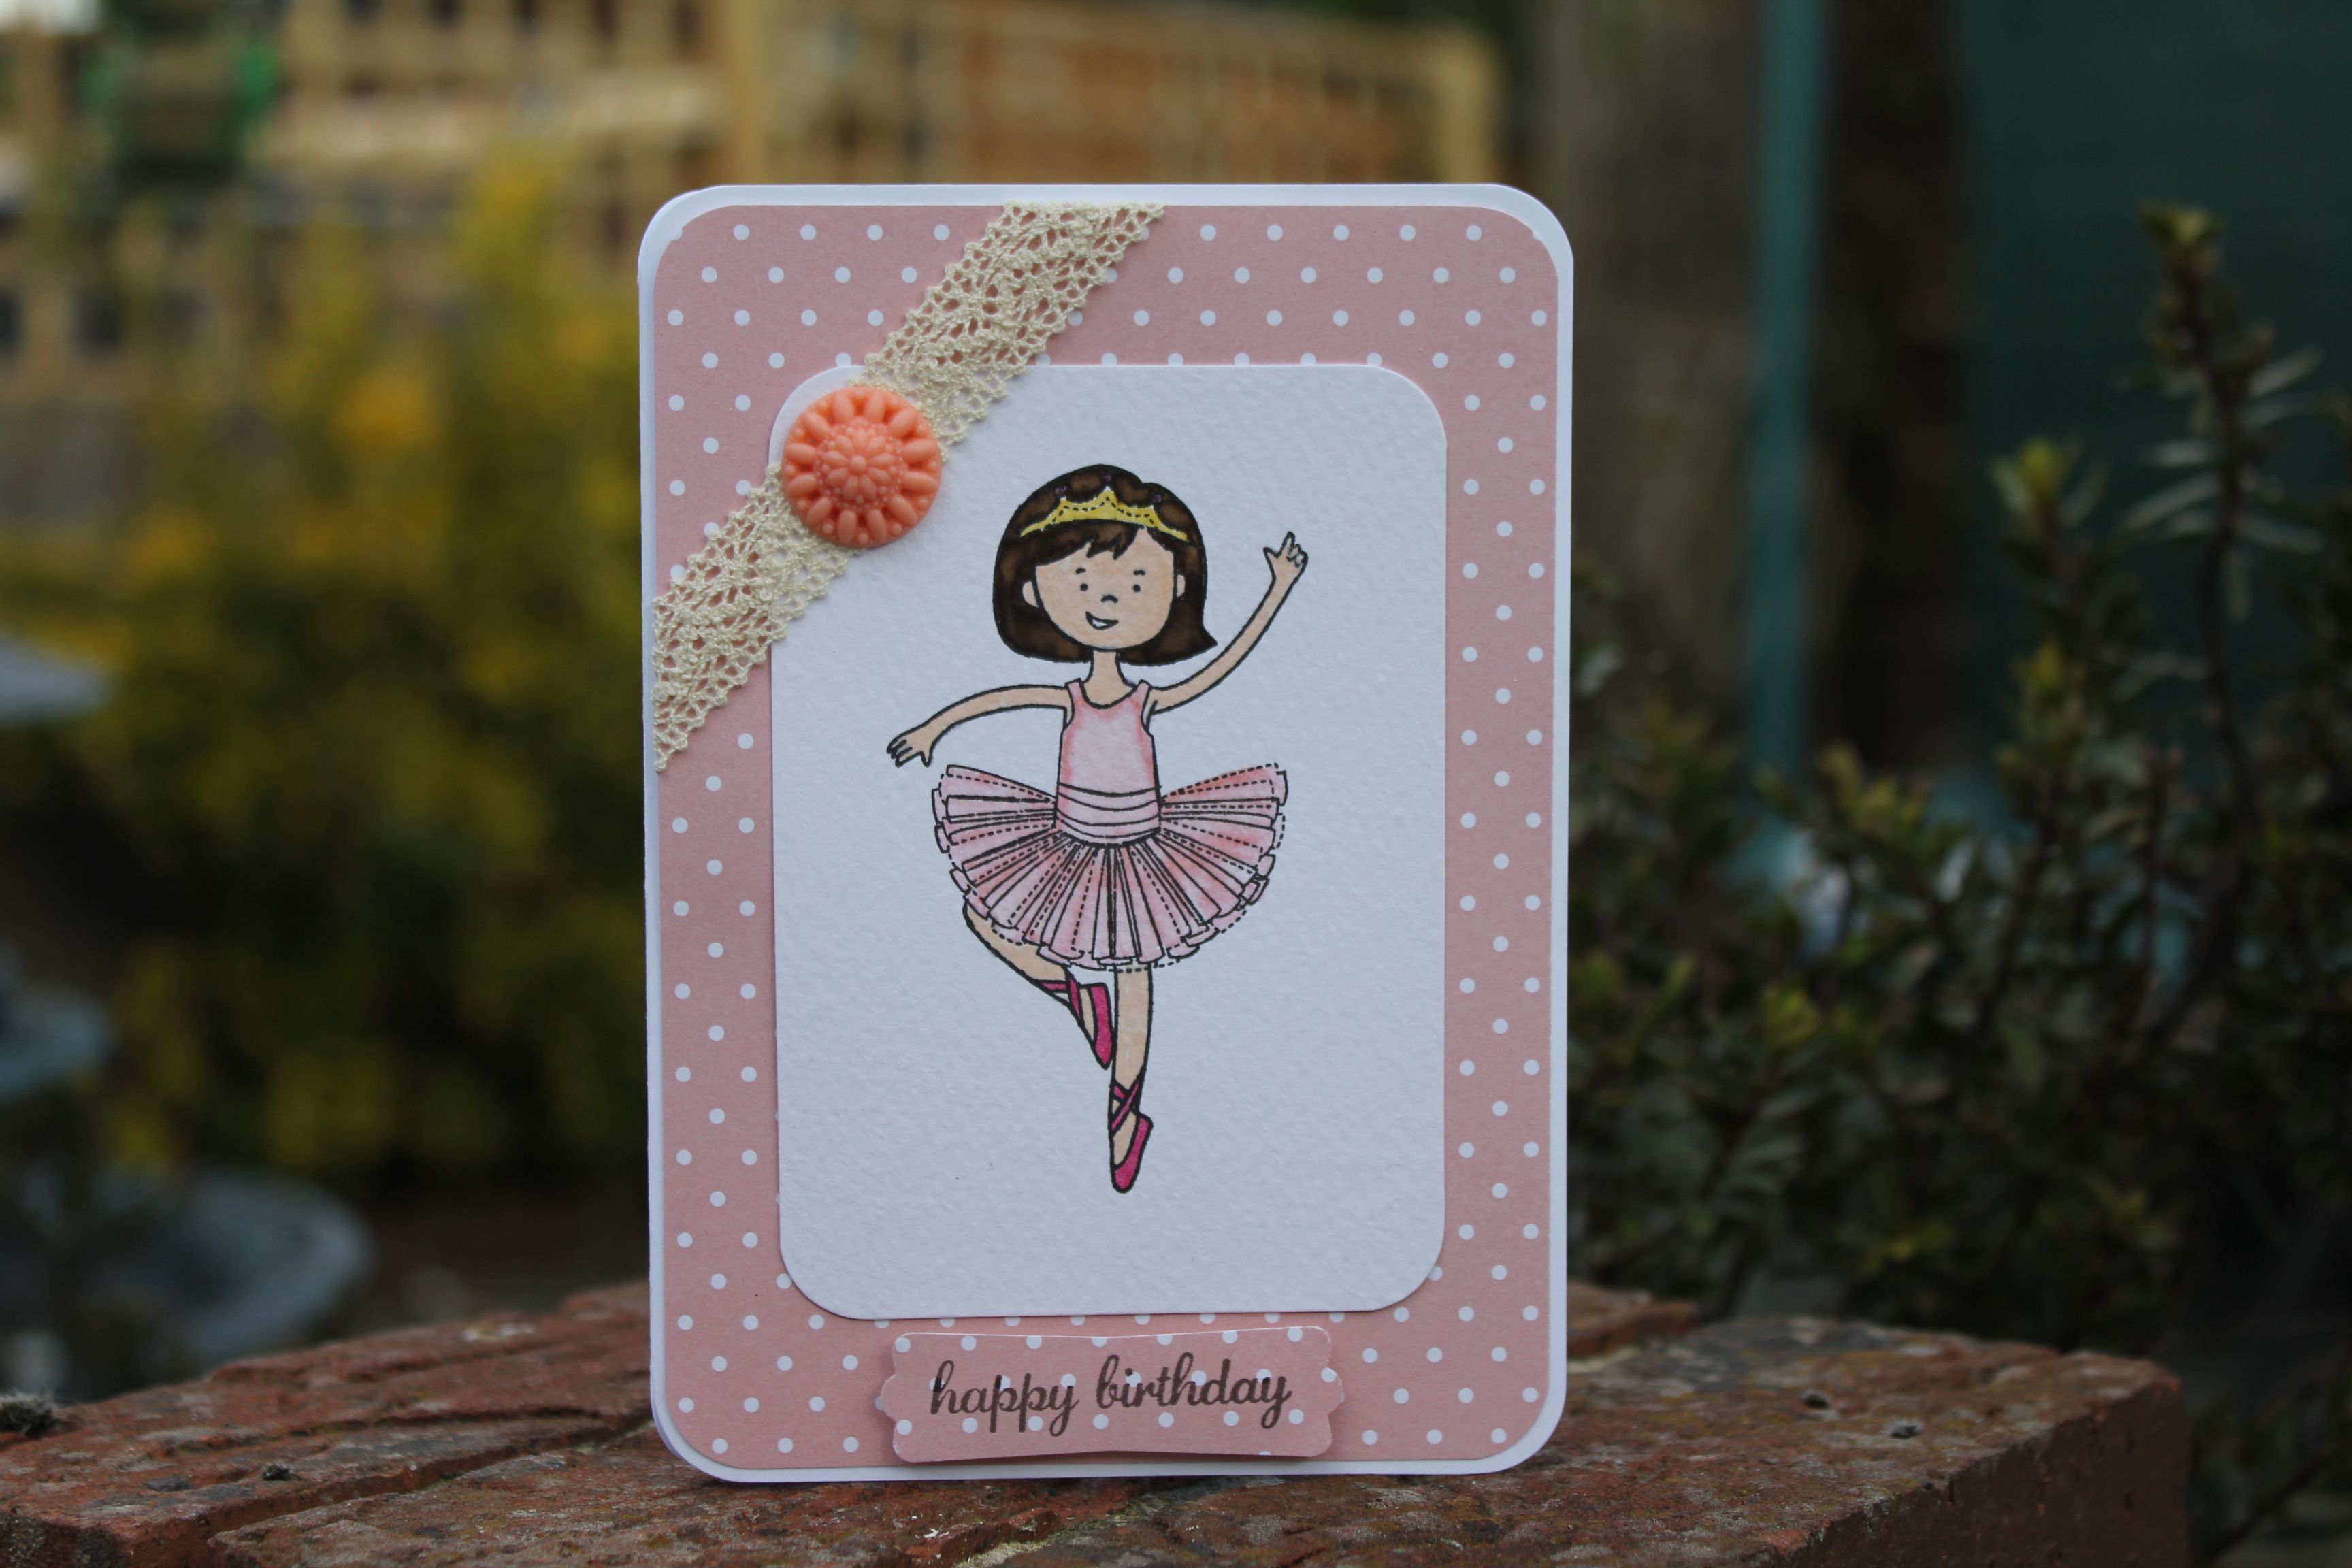 Little ballet girl from Stampin Up. Coloured with SU markers. Everything on card from SU.